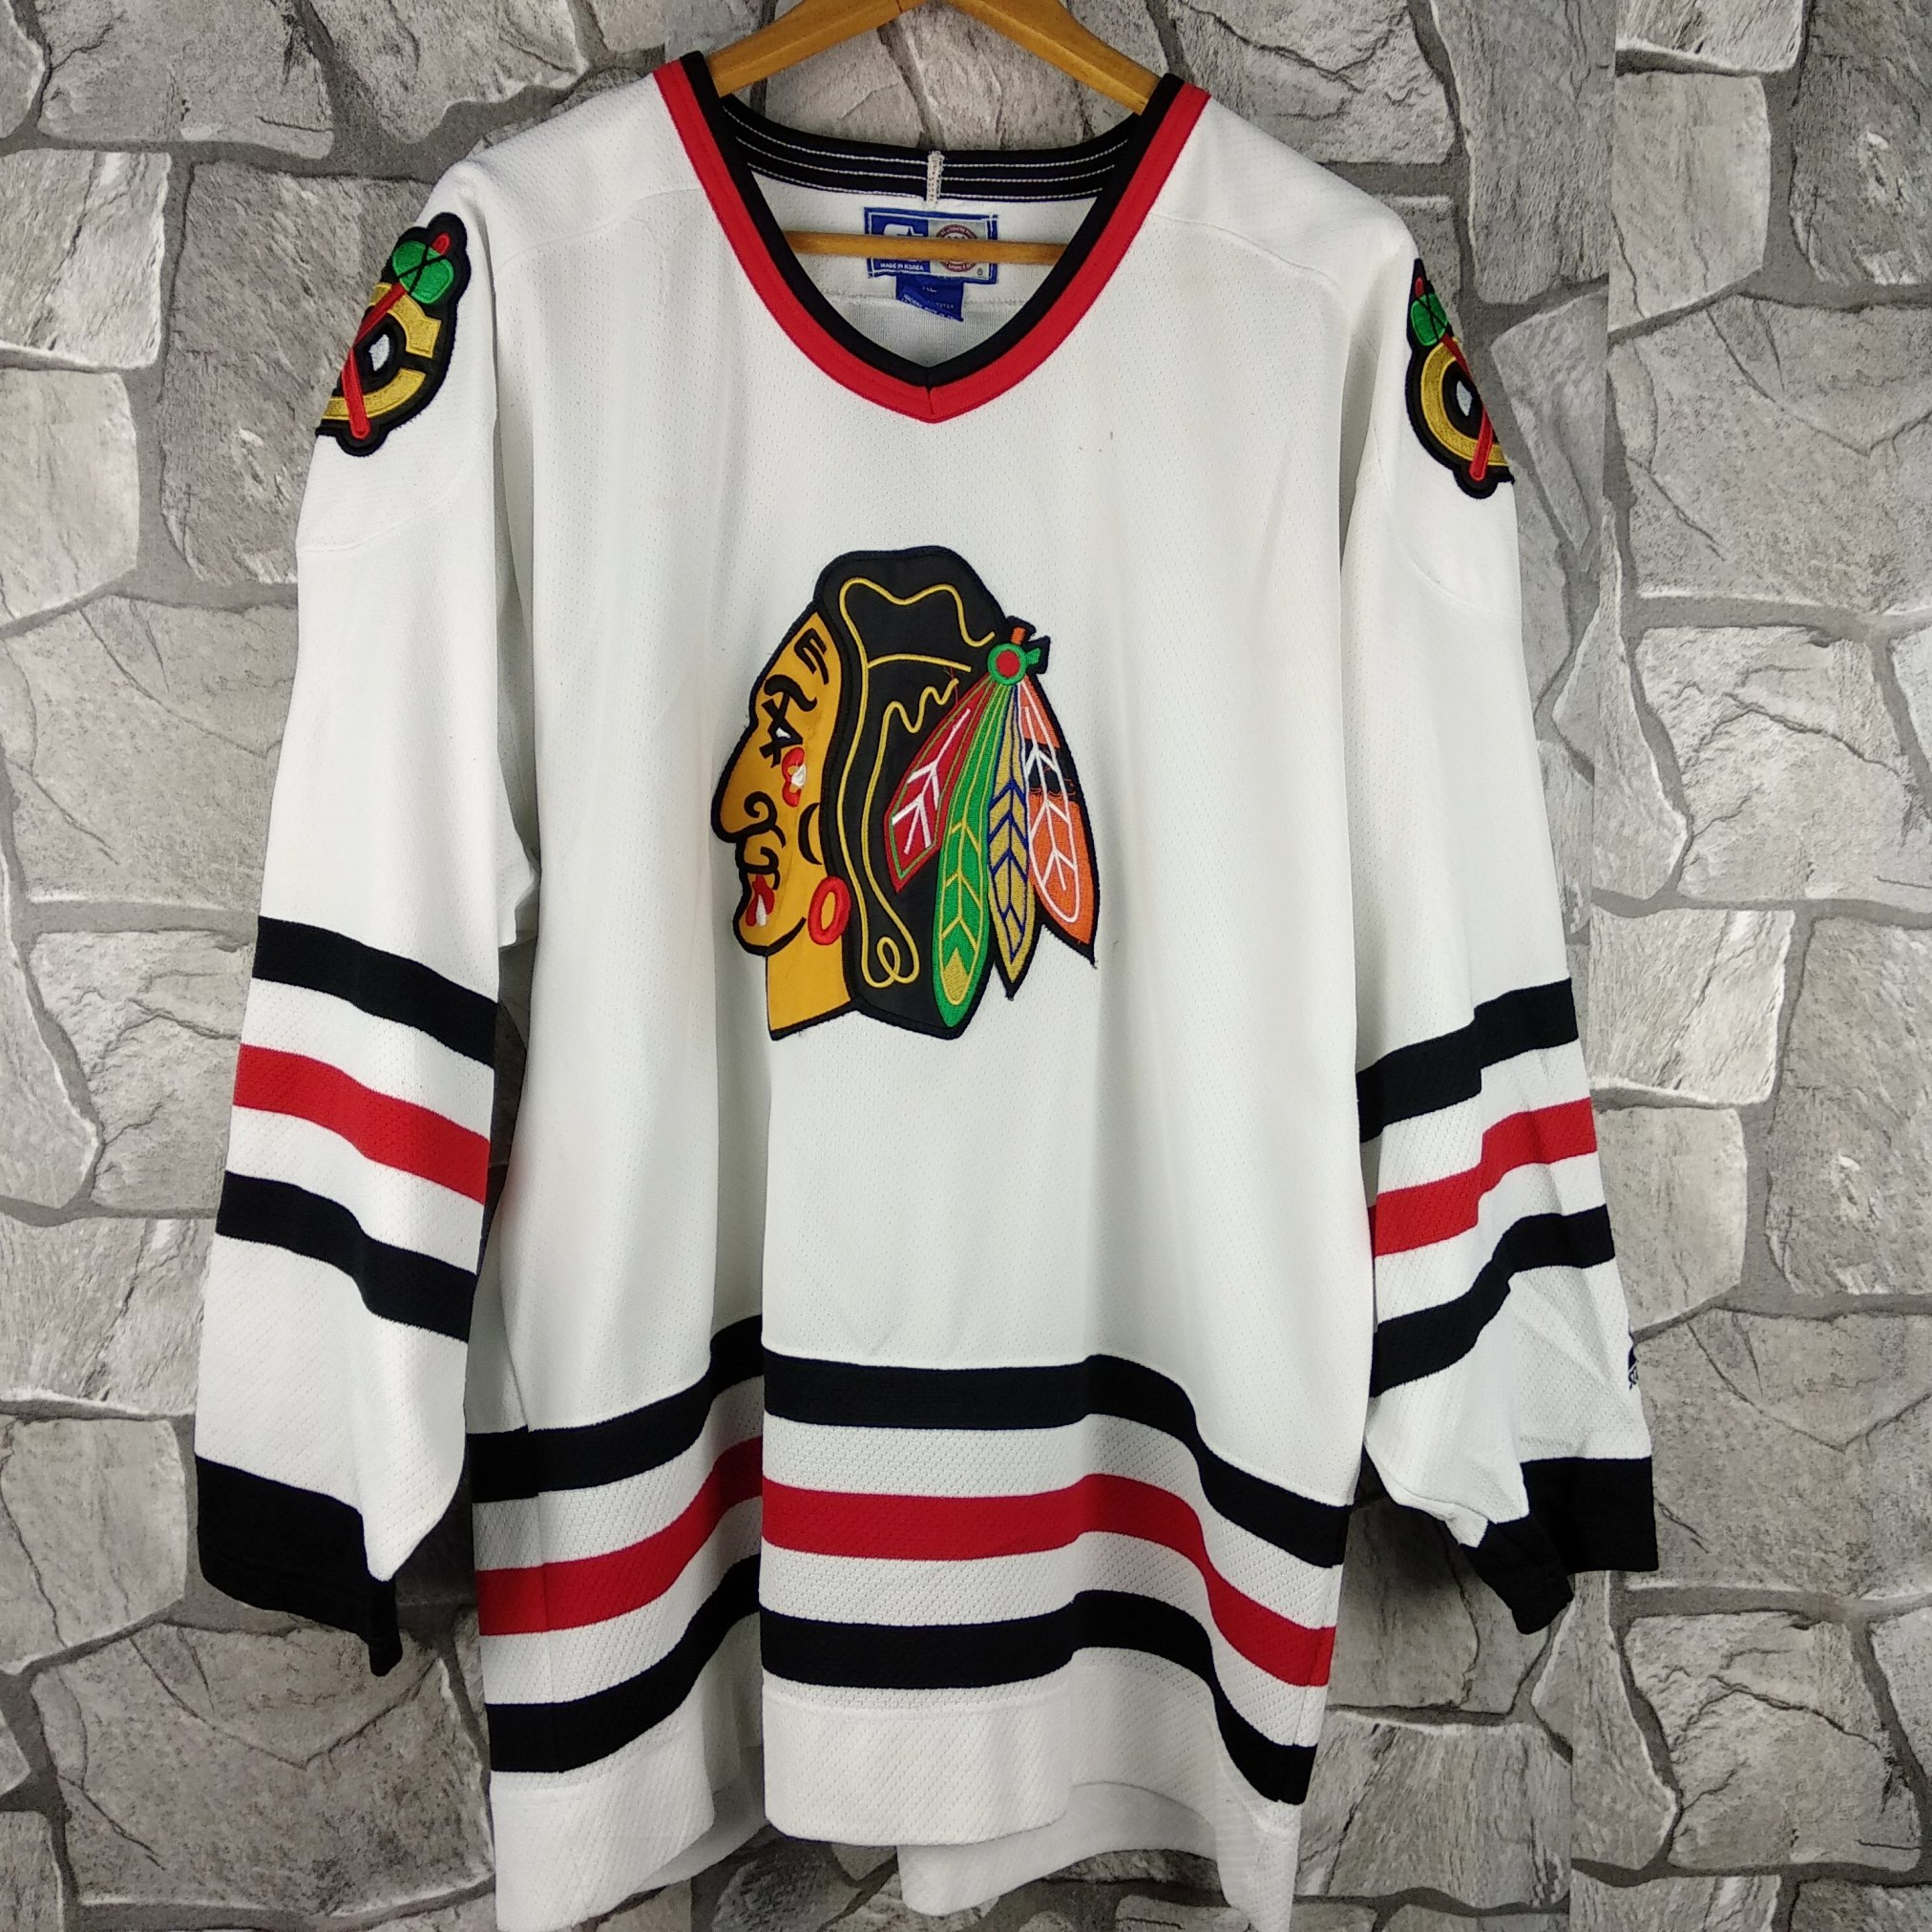 competitive price b4e94 9d1df Vintage 90s Starter NHL Chicago Blackhawks Black Ice Hockey Jersey X-Large